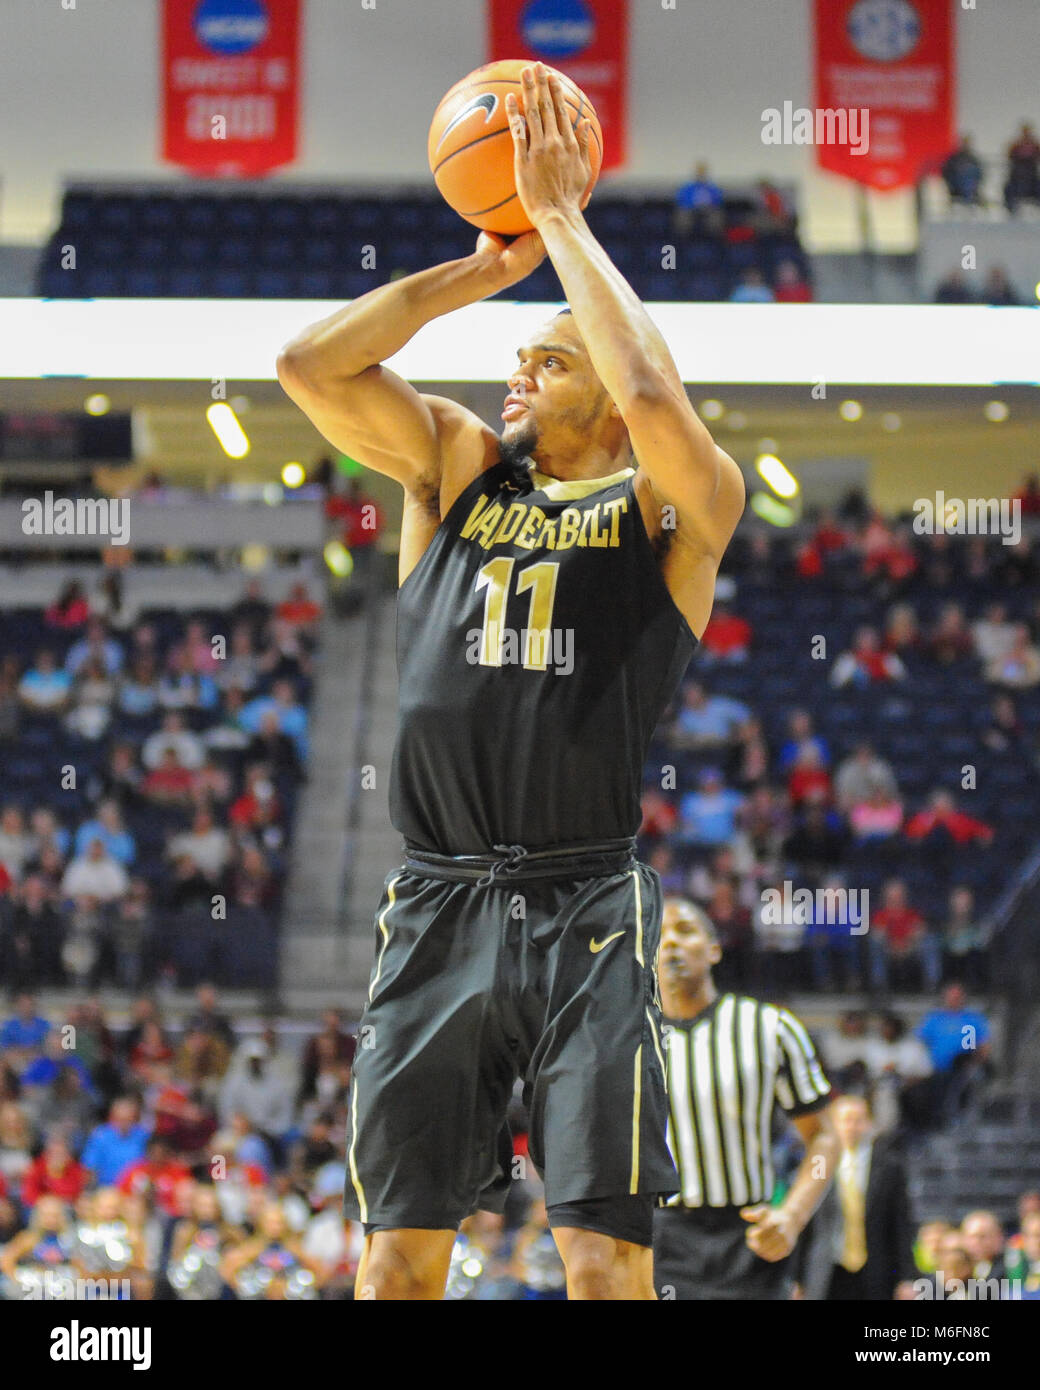 March 03, 2018; Oxford, MS, USA; The Vanderbilt Commodores lead the Ole' Miss Rebels, 45-44 after the first - Stock Image